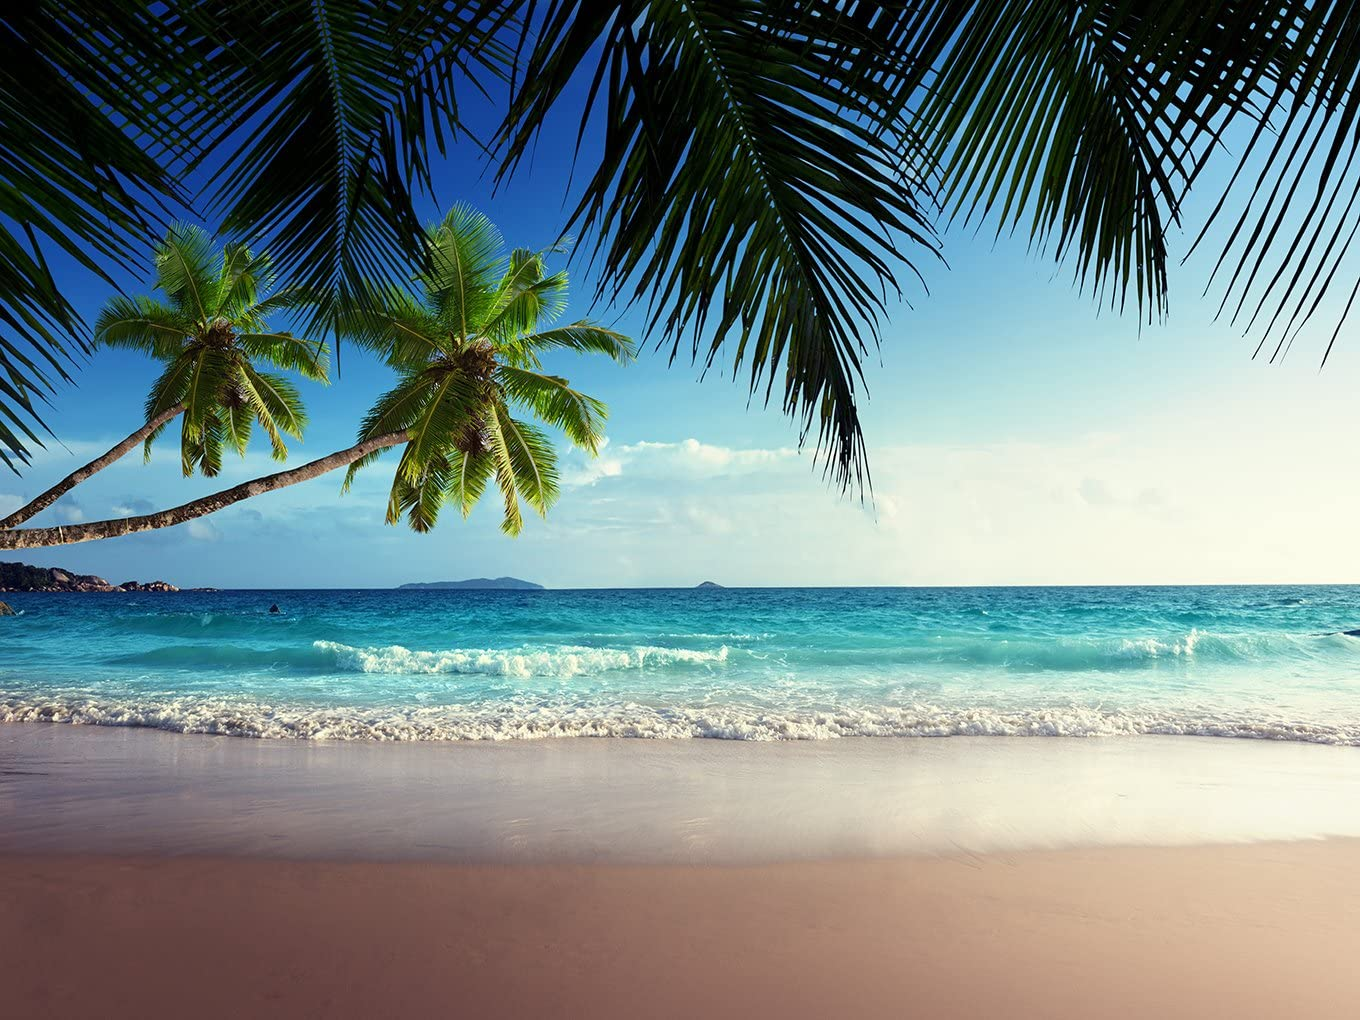 2x1.5m Gorgeous Tropical Summer Blue Sky Green Coconut Tree Leaves Beach Ocean Sea Holiday Tour Birthday Party Wedding Portrait Natural Scenery Backdrop Photography Background 388 DZJYQ 6.5x5ft